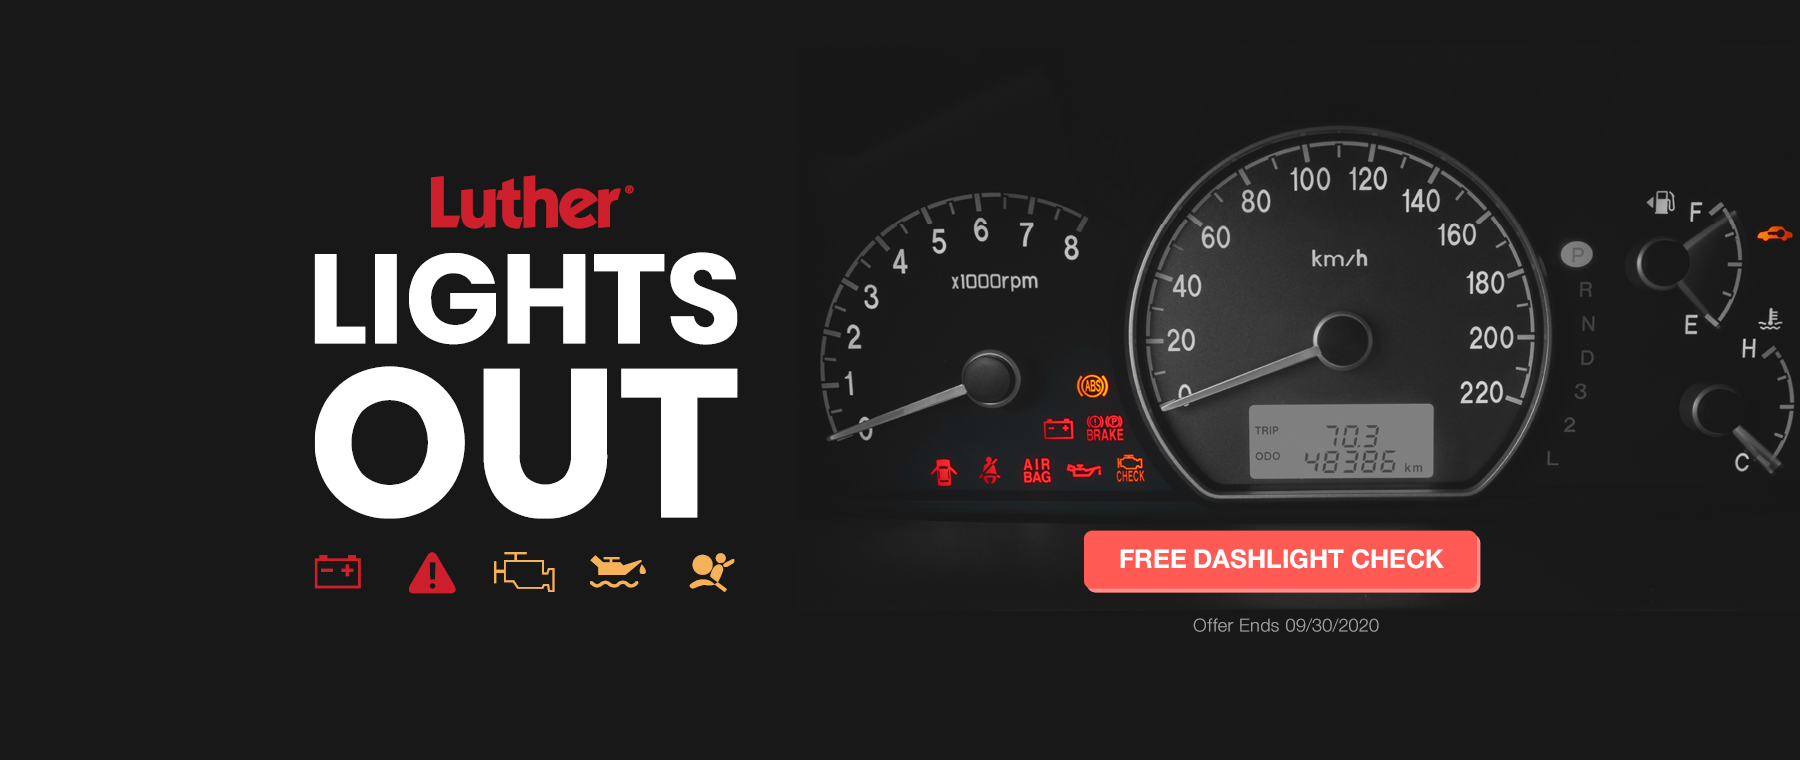 Lights_Out_Slider_1800x760_9-2020